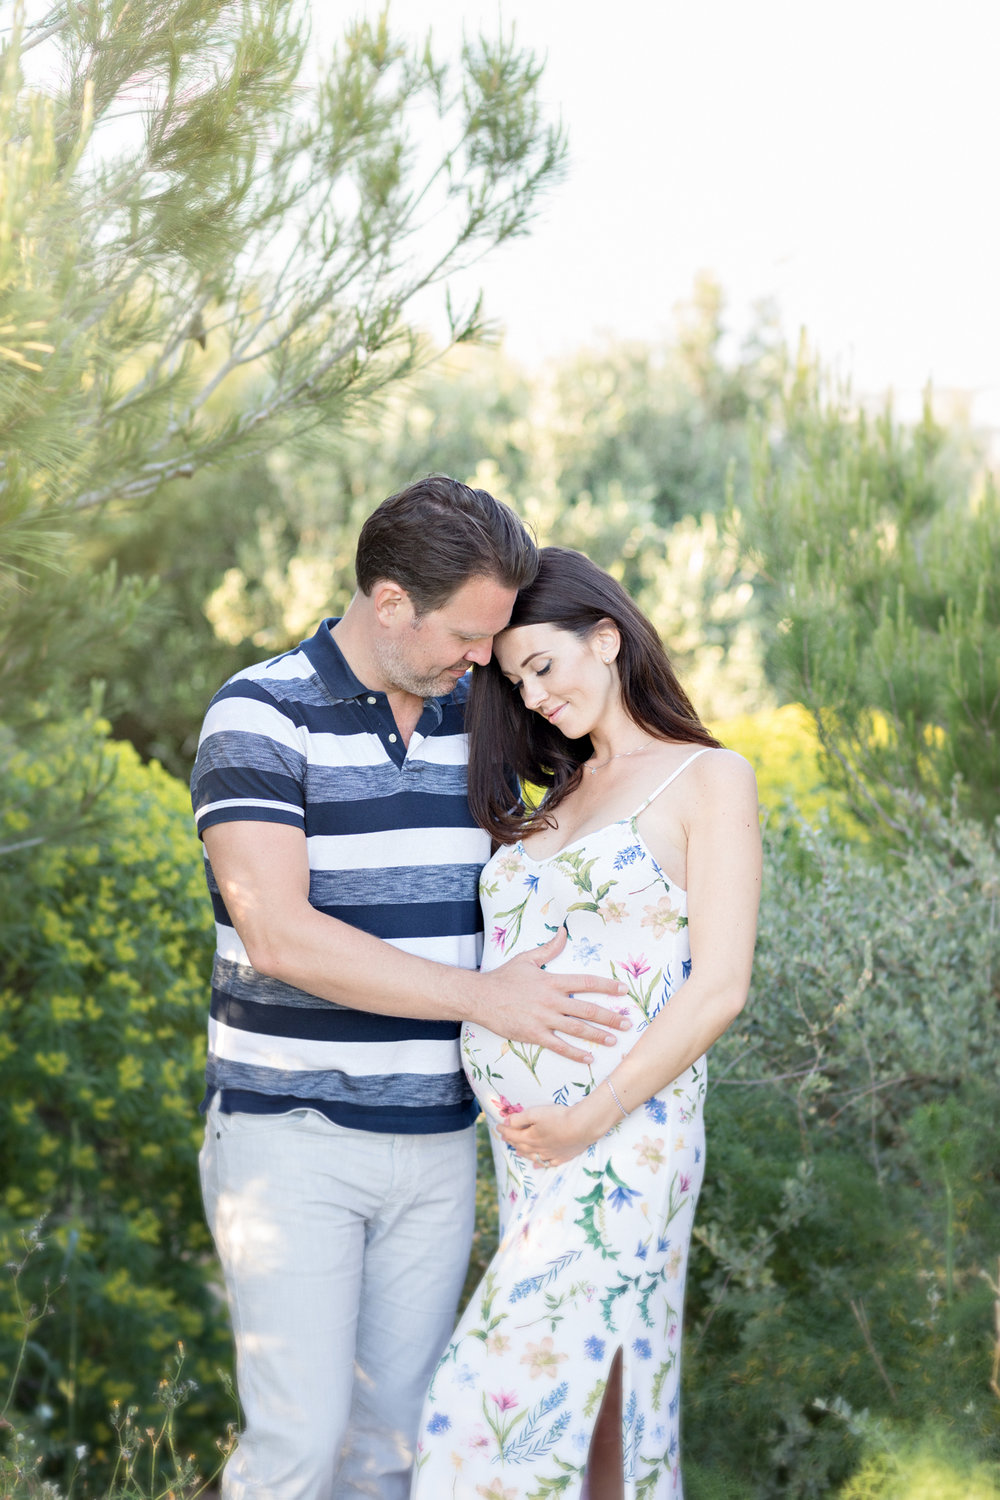 maternity maternity photo shoot golden bay sunset happy couple parents to be expecting glowing pregnant maternity dress malta photographer swedish photographer malta couples malta